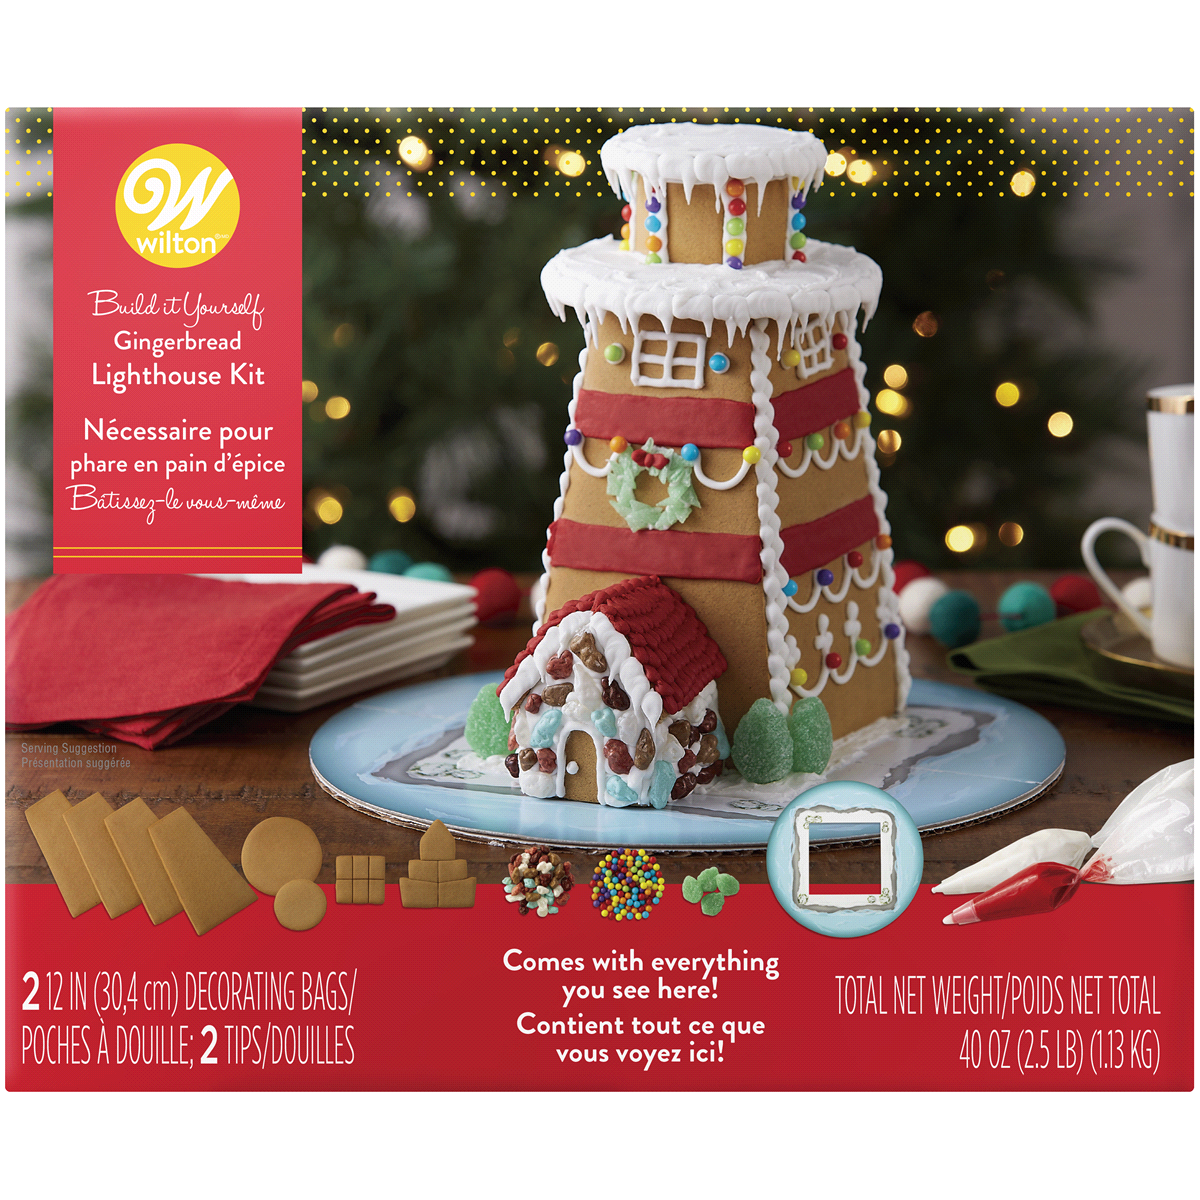 Wilton BuilditYourself Gingerbread Lighthouse Decorating